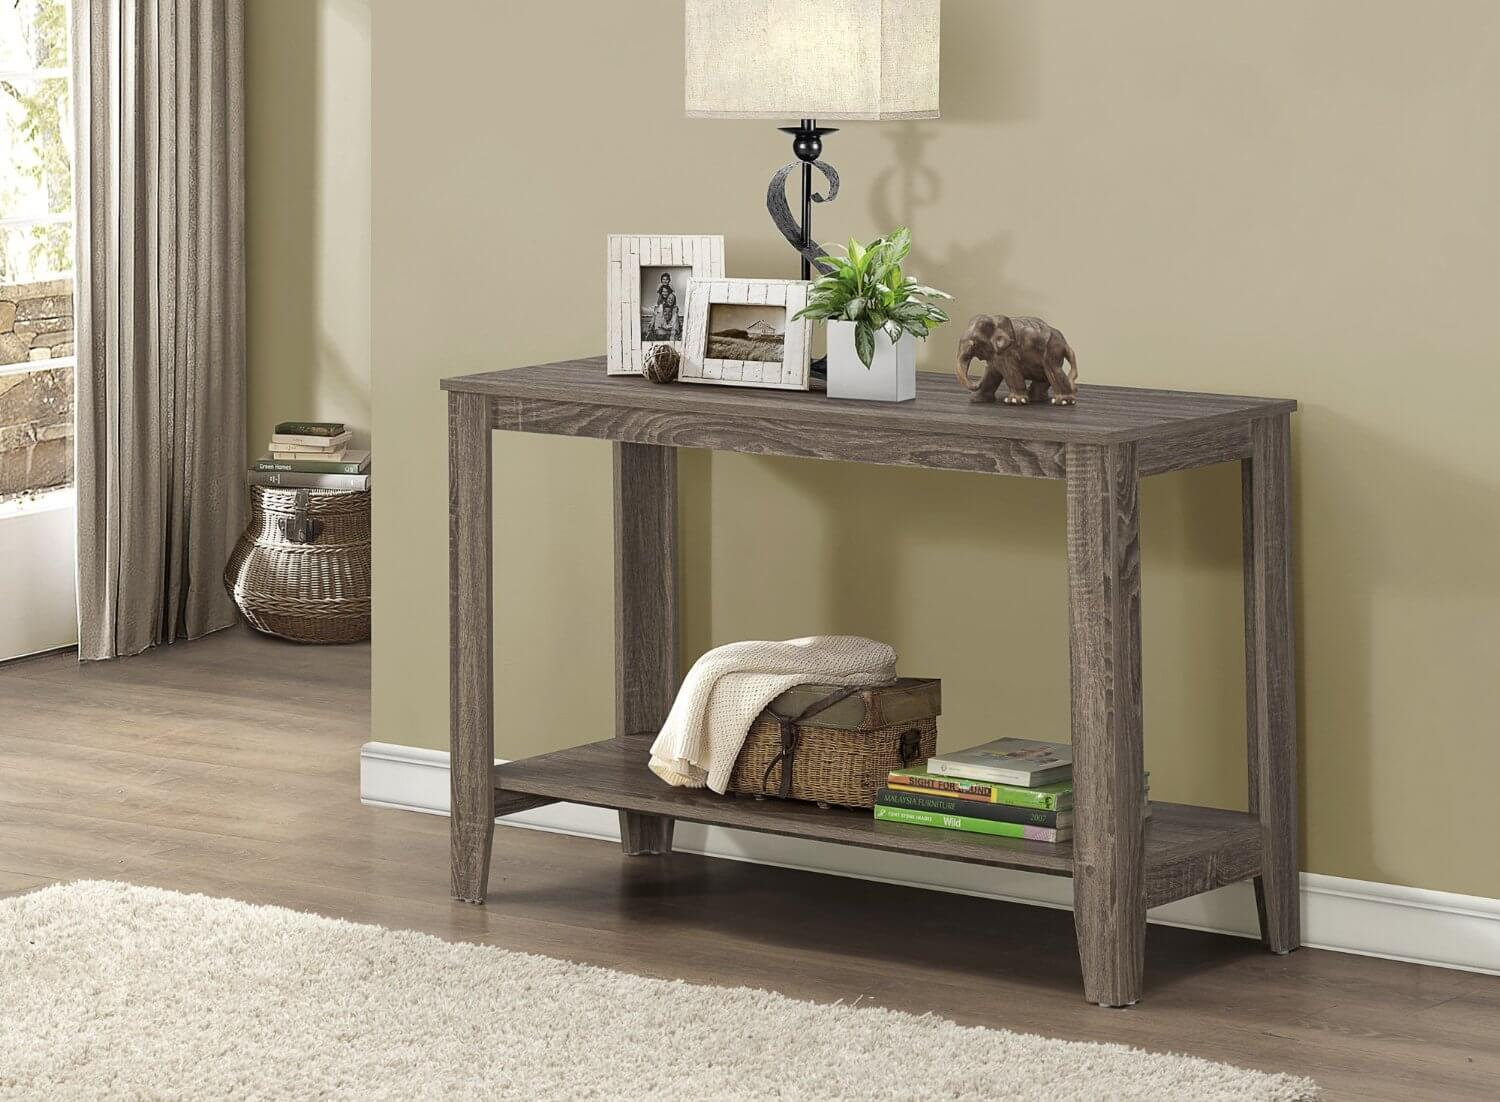 While the top of the table is used to house a lamp and several accents, the lower portion can house items in a basket.